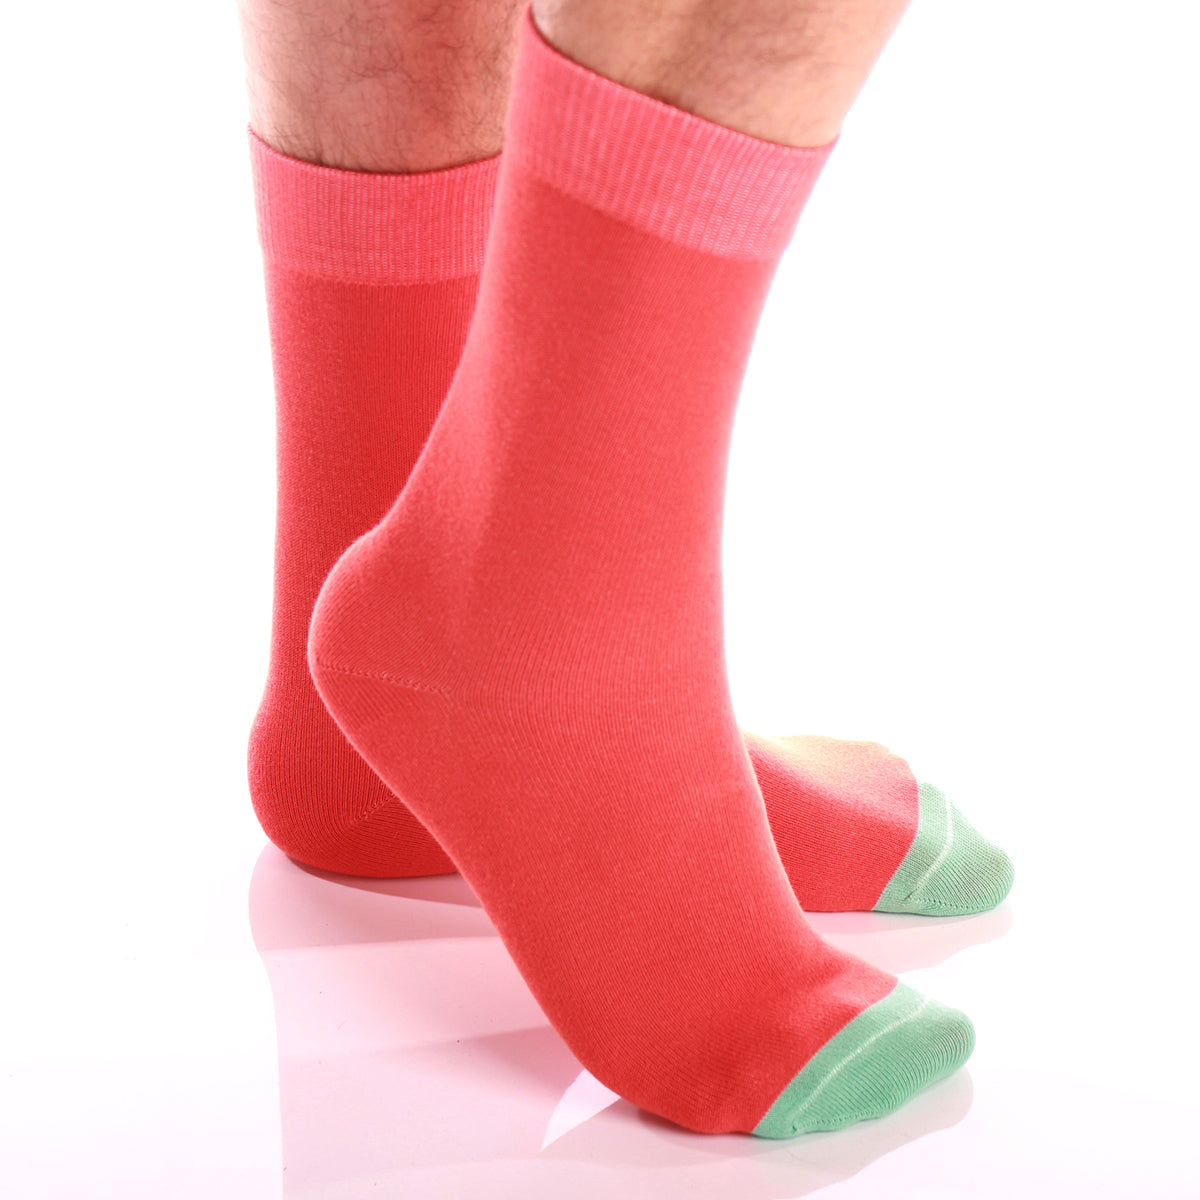 Men's Colorful Solid Orange with Light Green Socks - Amedeo Exclusive